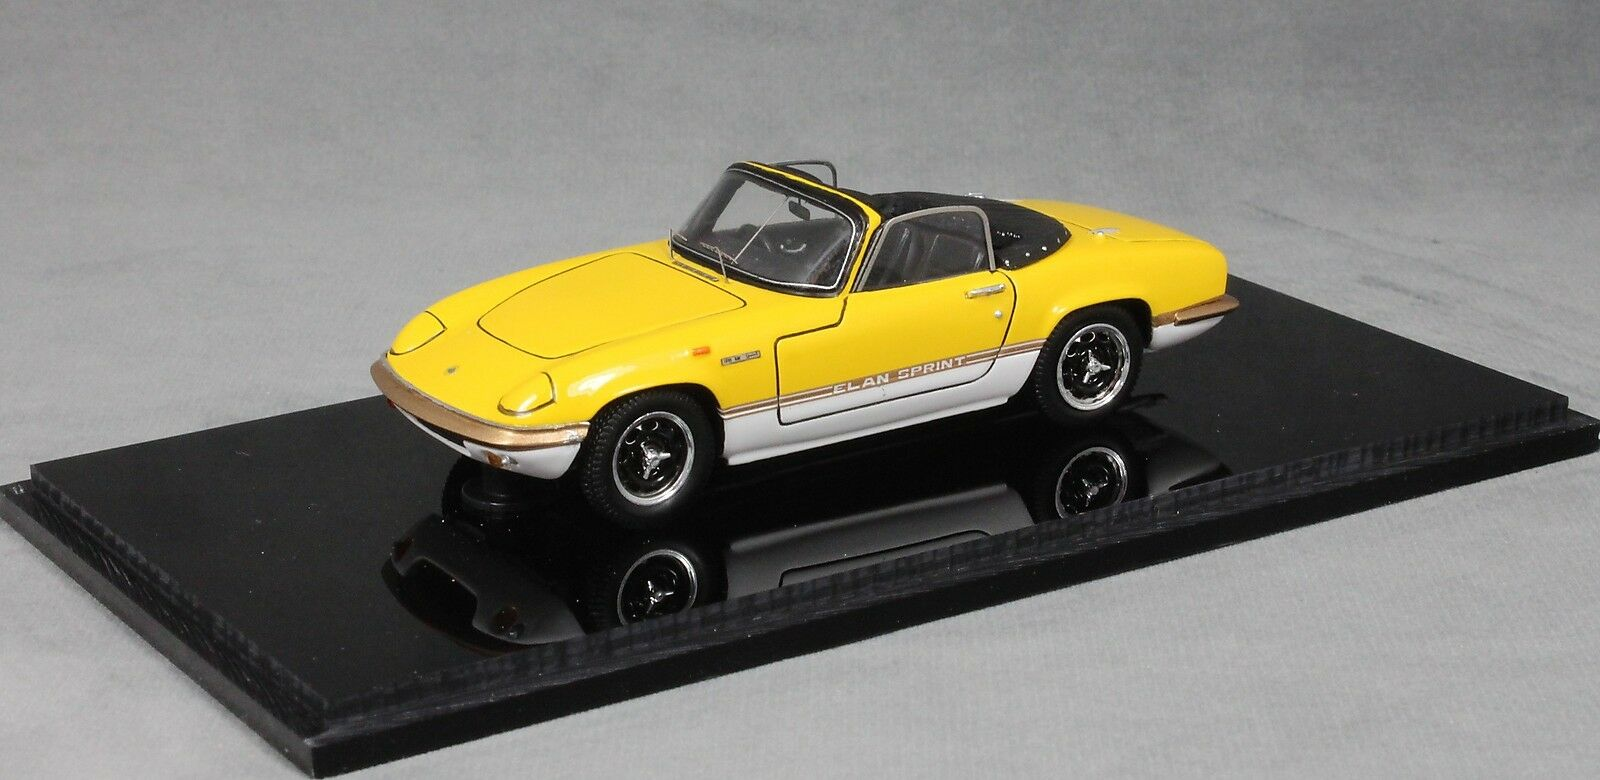 Spark Lotus Elan S4 Sprint Drop Head Coupe in Yellow Yellow Yellow 1971 S2227 1 43 NEW 87a913